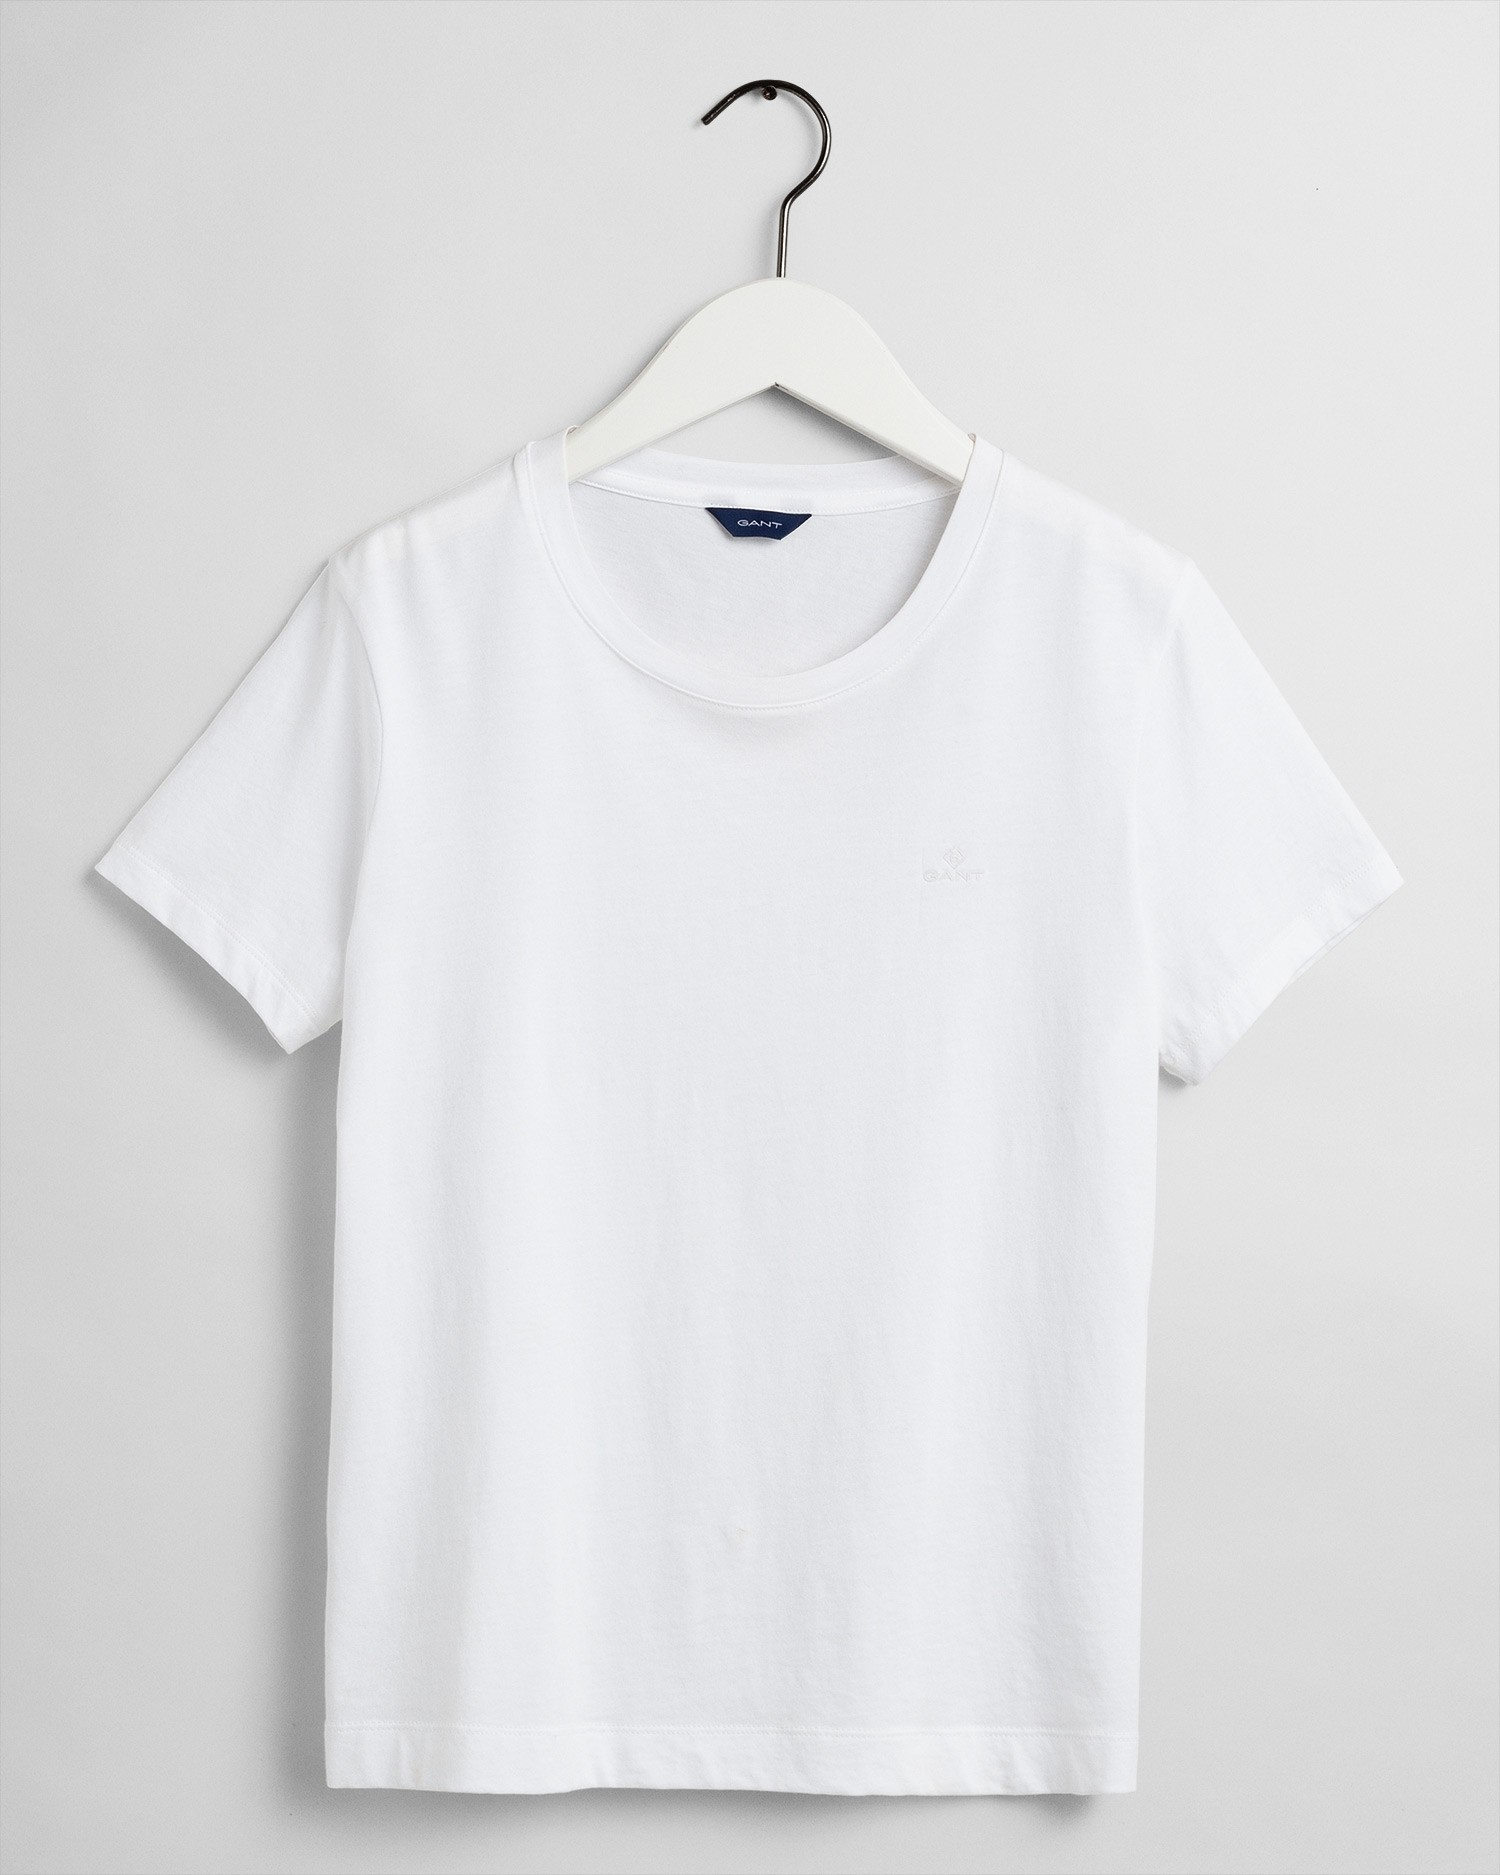 GANT T-Shirt Damski The Original - 4200433